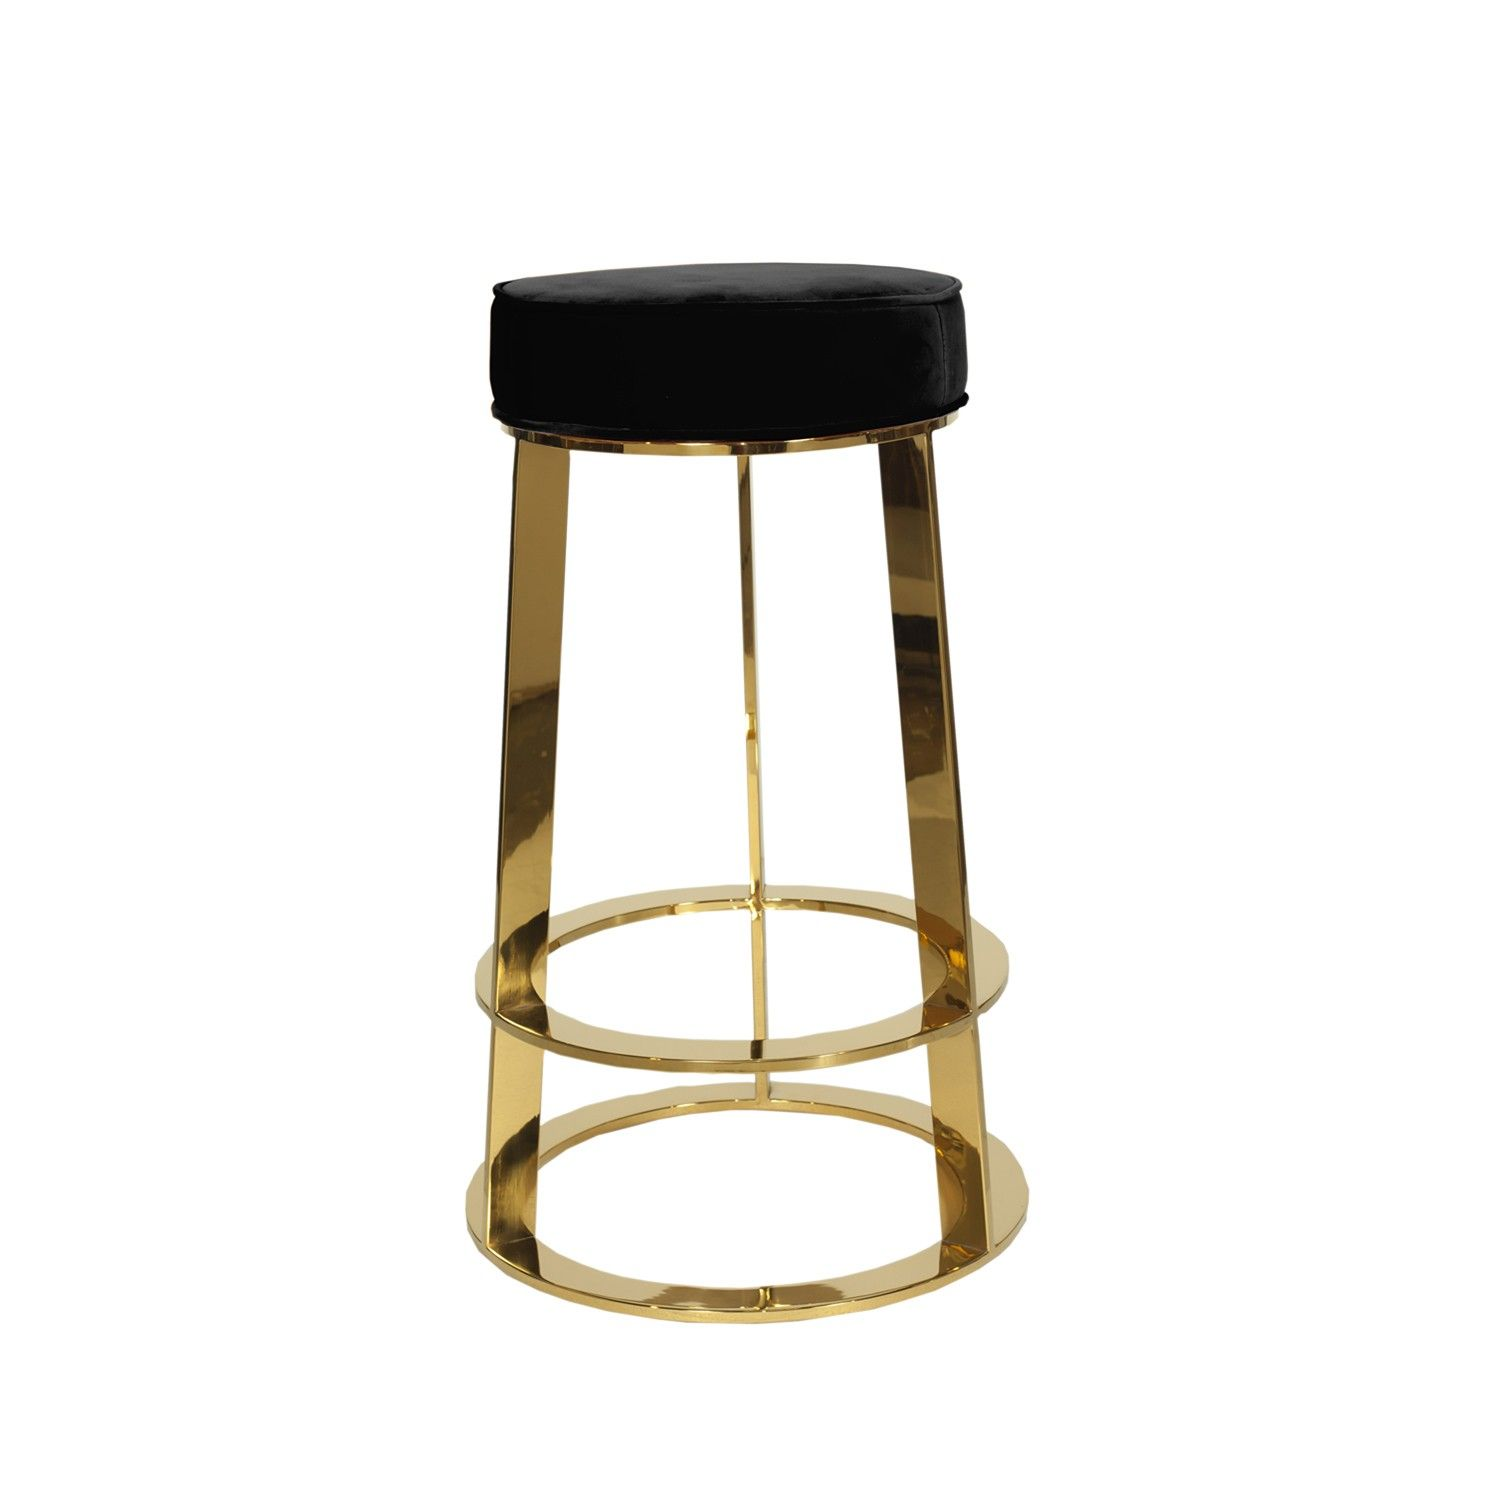 Captivating Worlds Away Samson Brass Round Counter Stool In Black